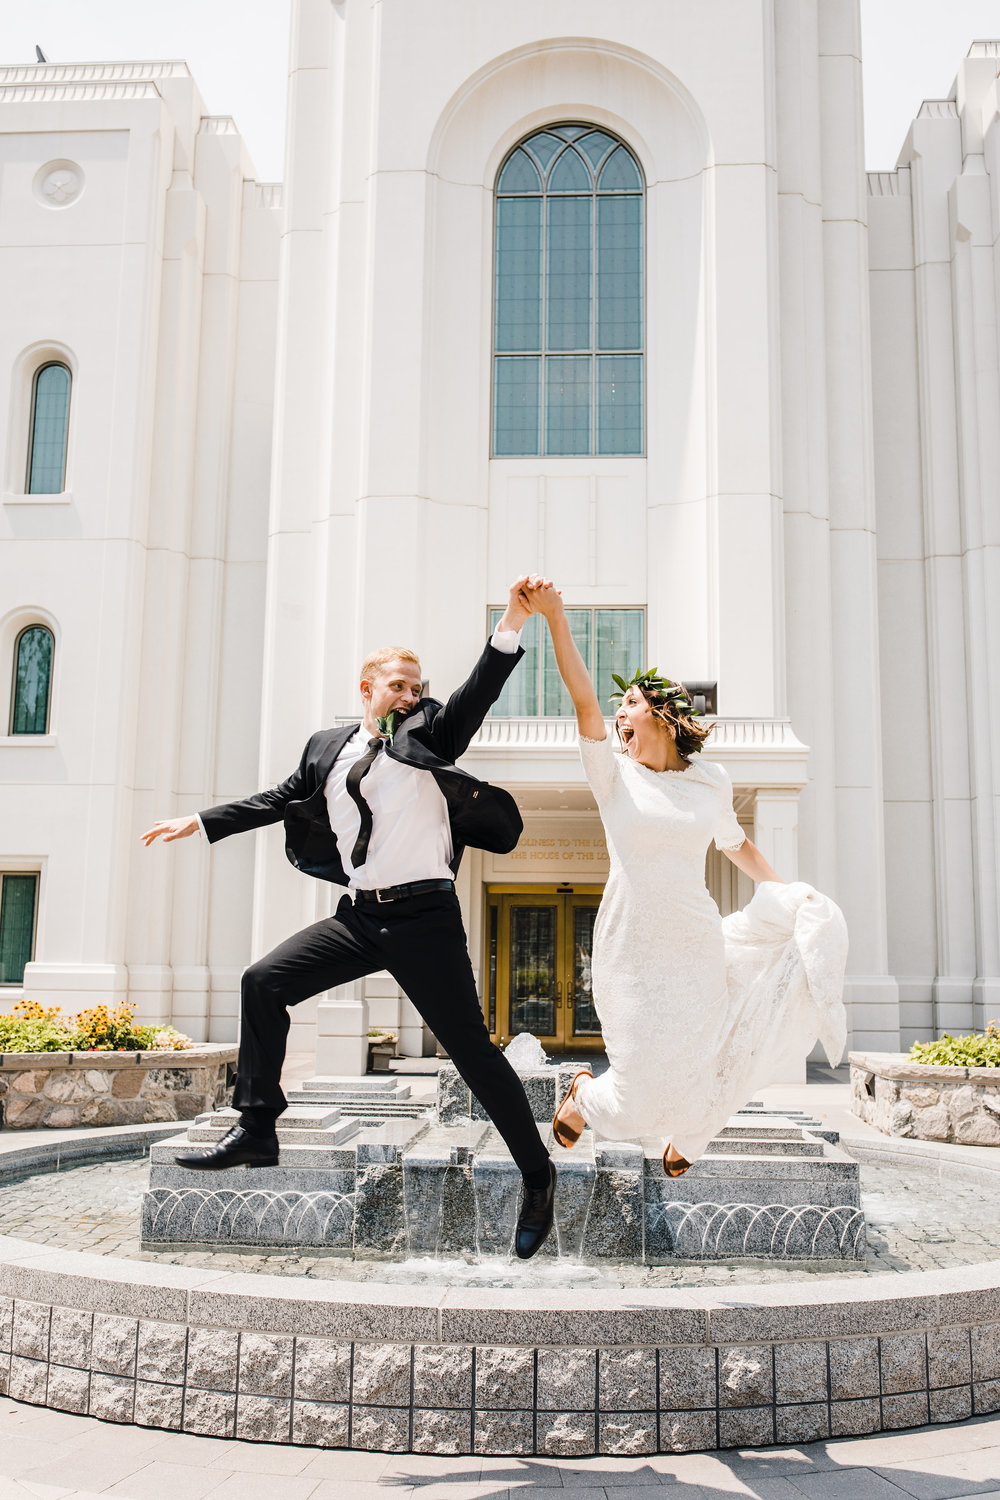 brigham city professional wedding photographer fountain jumping holding hands laughing smiling